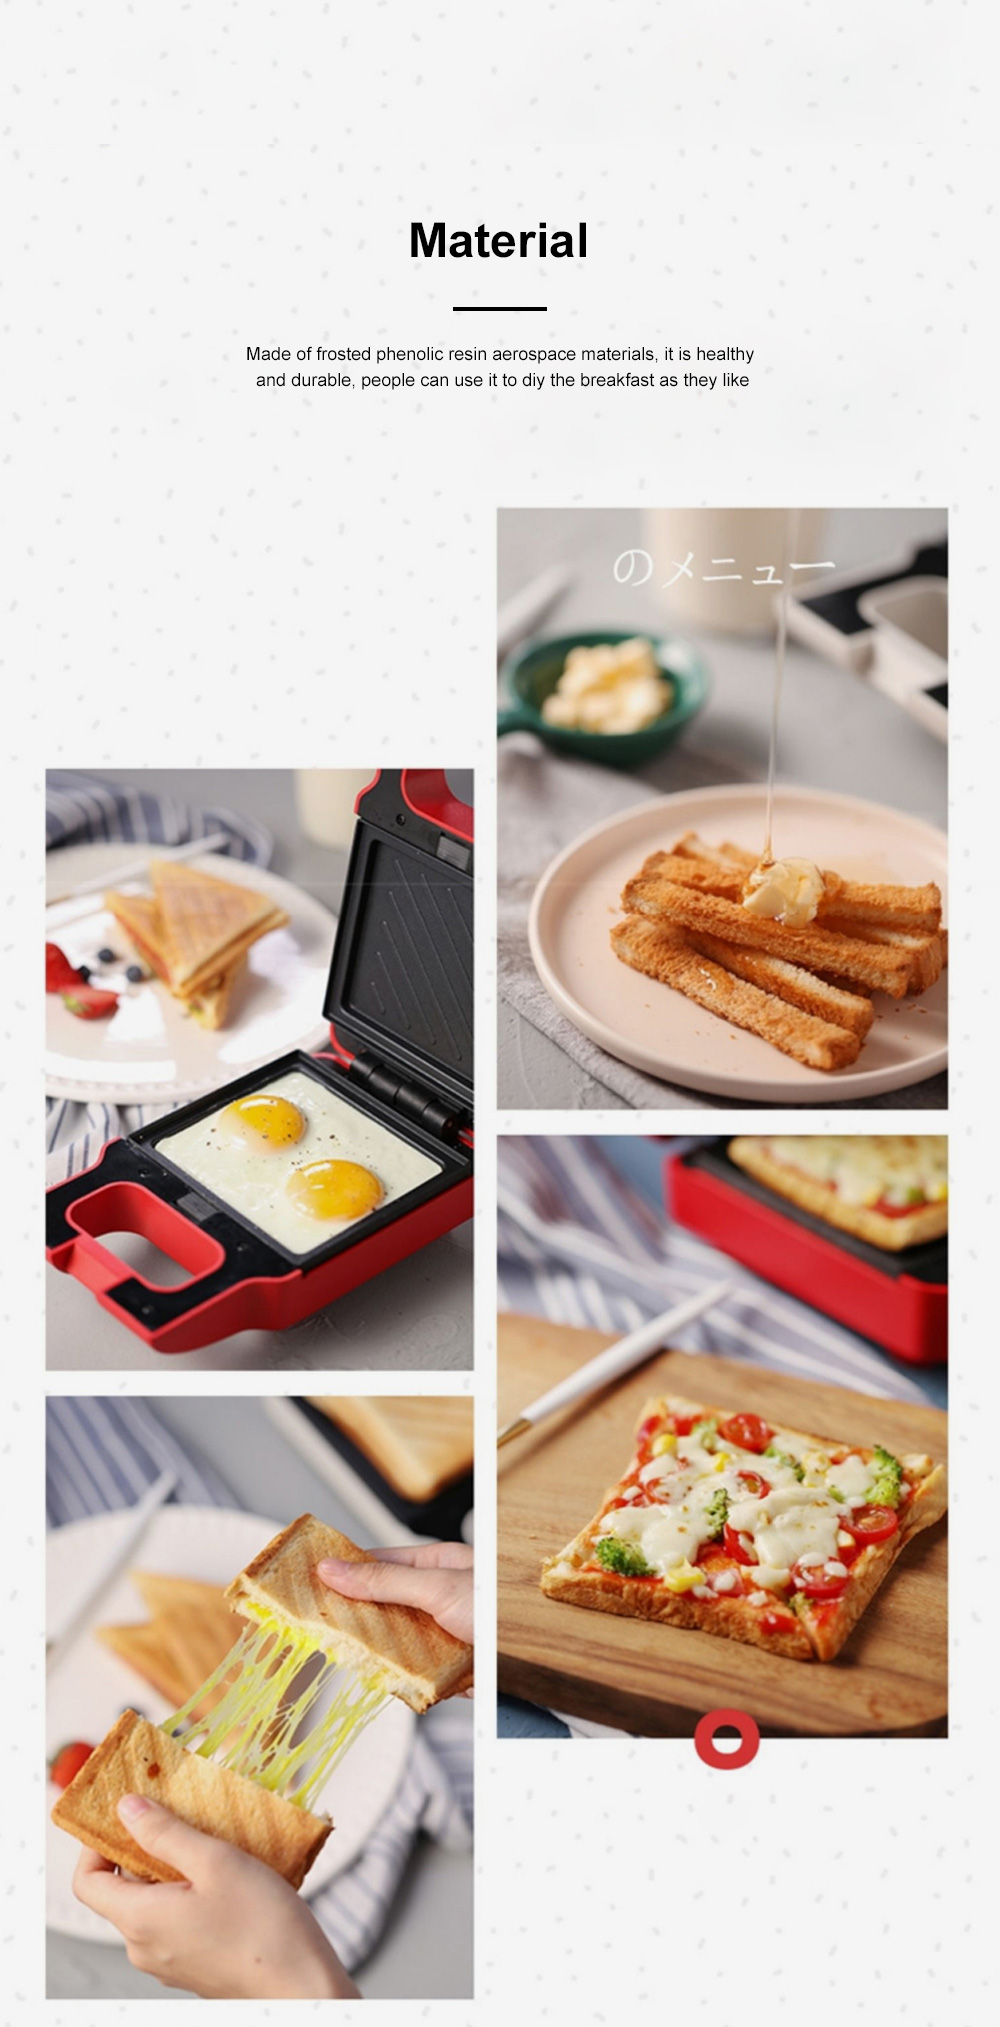 Kitchen Multifunctional Three-minute Breakfast Machine Sandwich Maker Waffle For Making Toast Bread Cookies Muffins Price 6